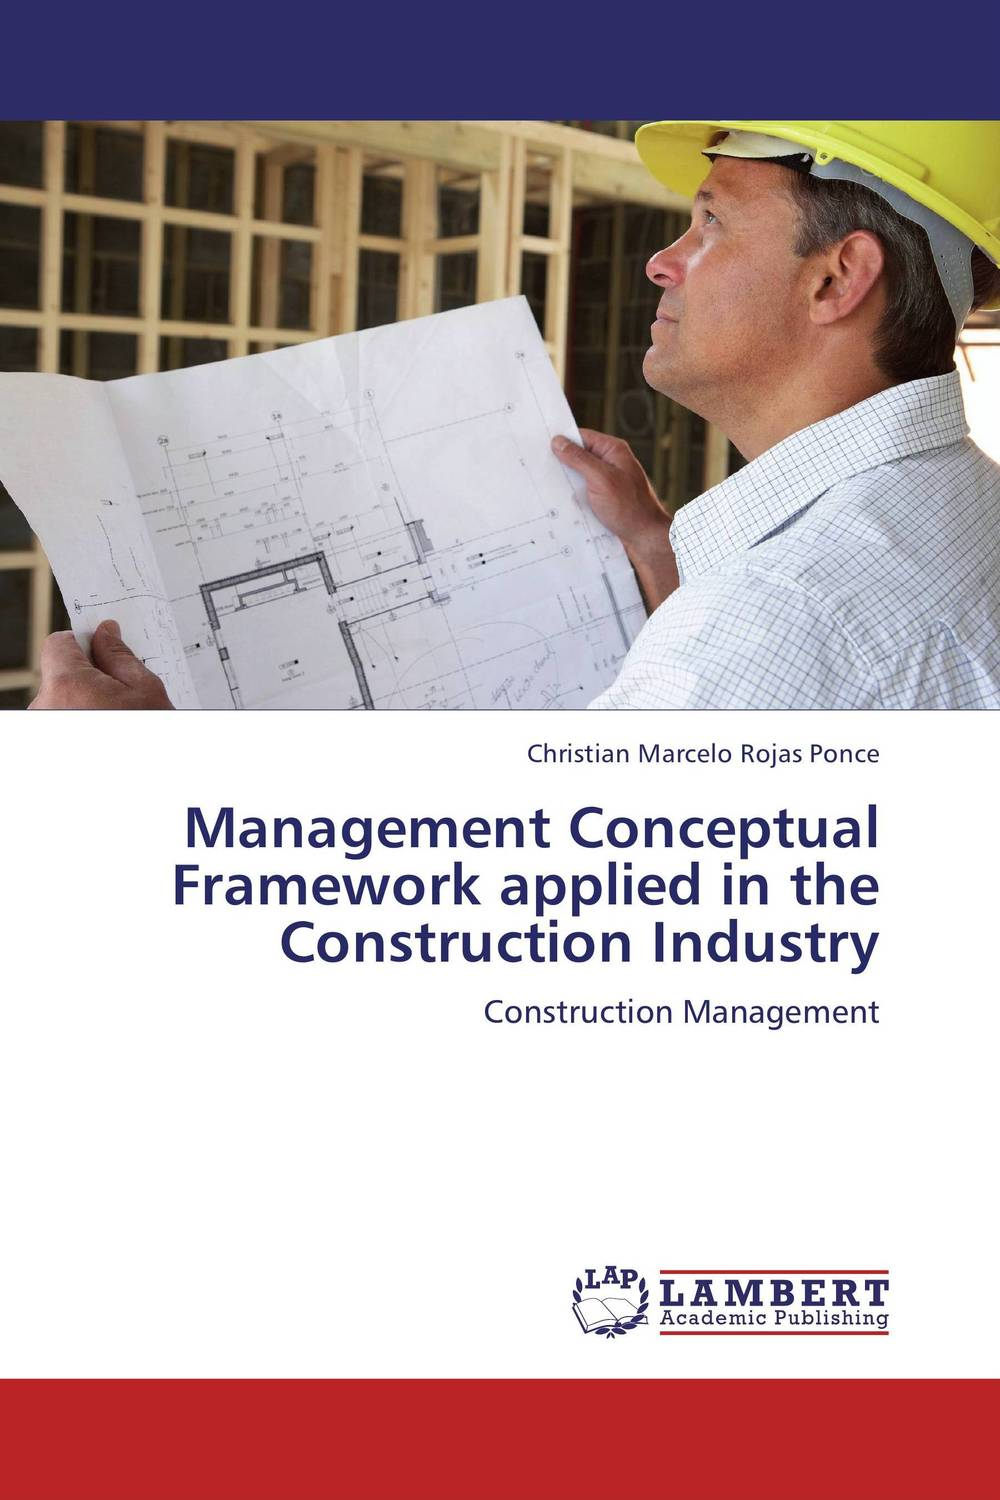 Management Conceptual Framework applied in the Construction Industry fei dai and ming lu applied close range photogrammetry in construction